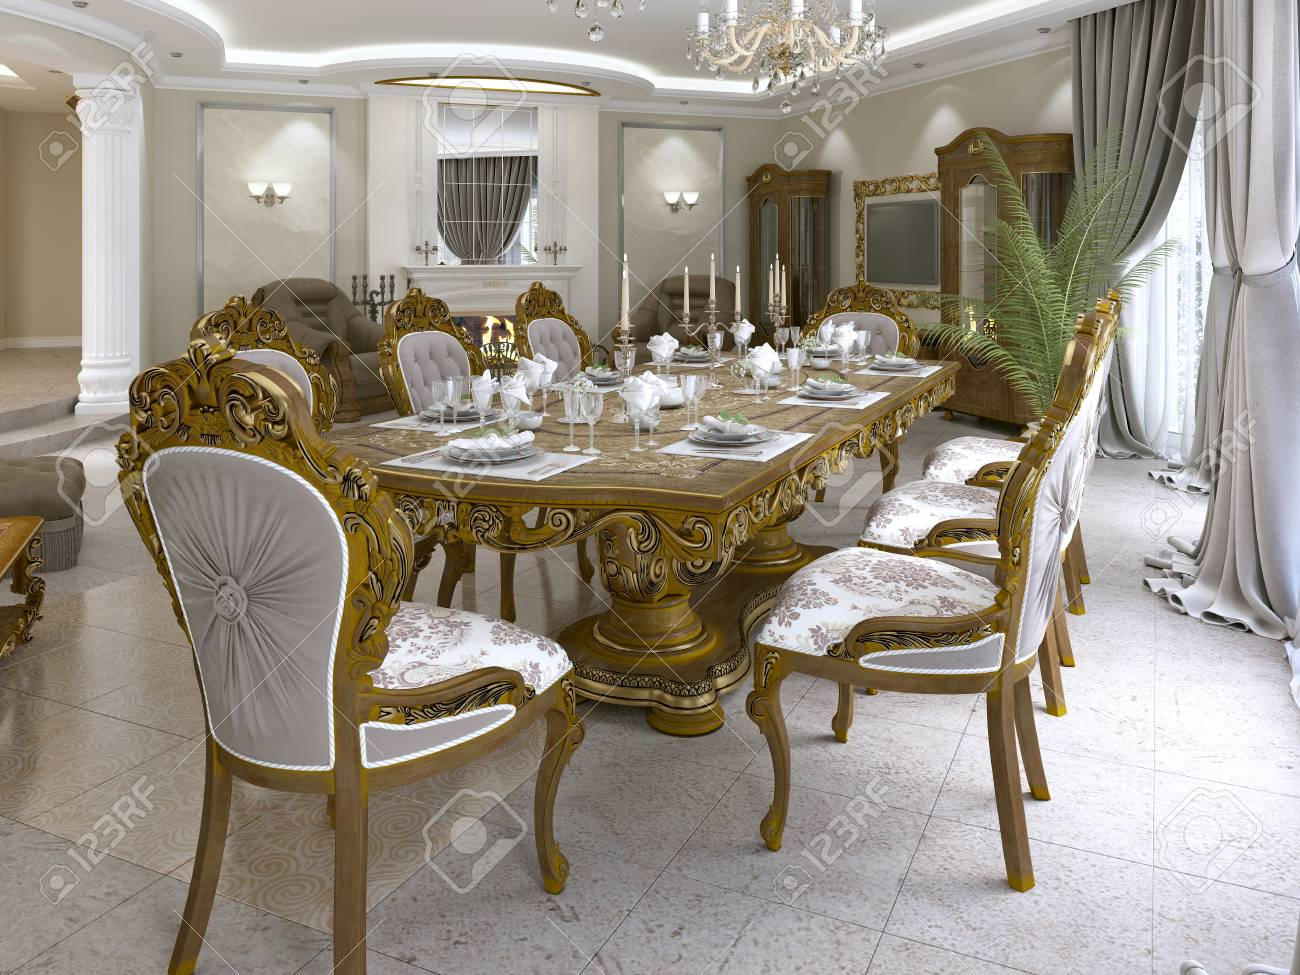 Modern classic dining table in a luxurious baroque living room..